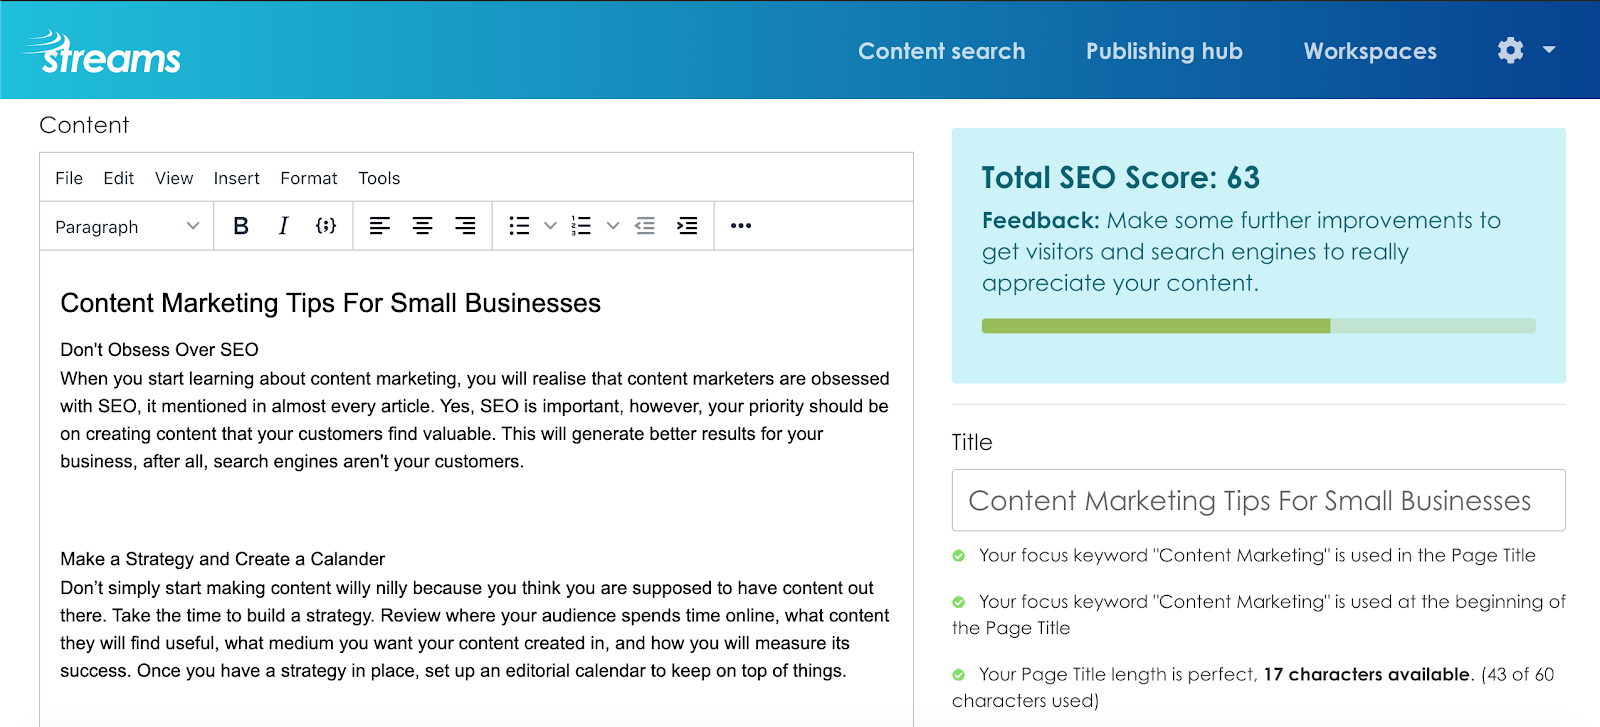 Content marketing tools for small businesses, content marketing tips for small businesses, small business content marketing trends